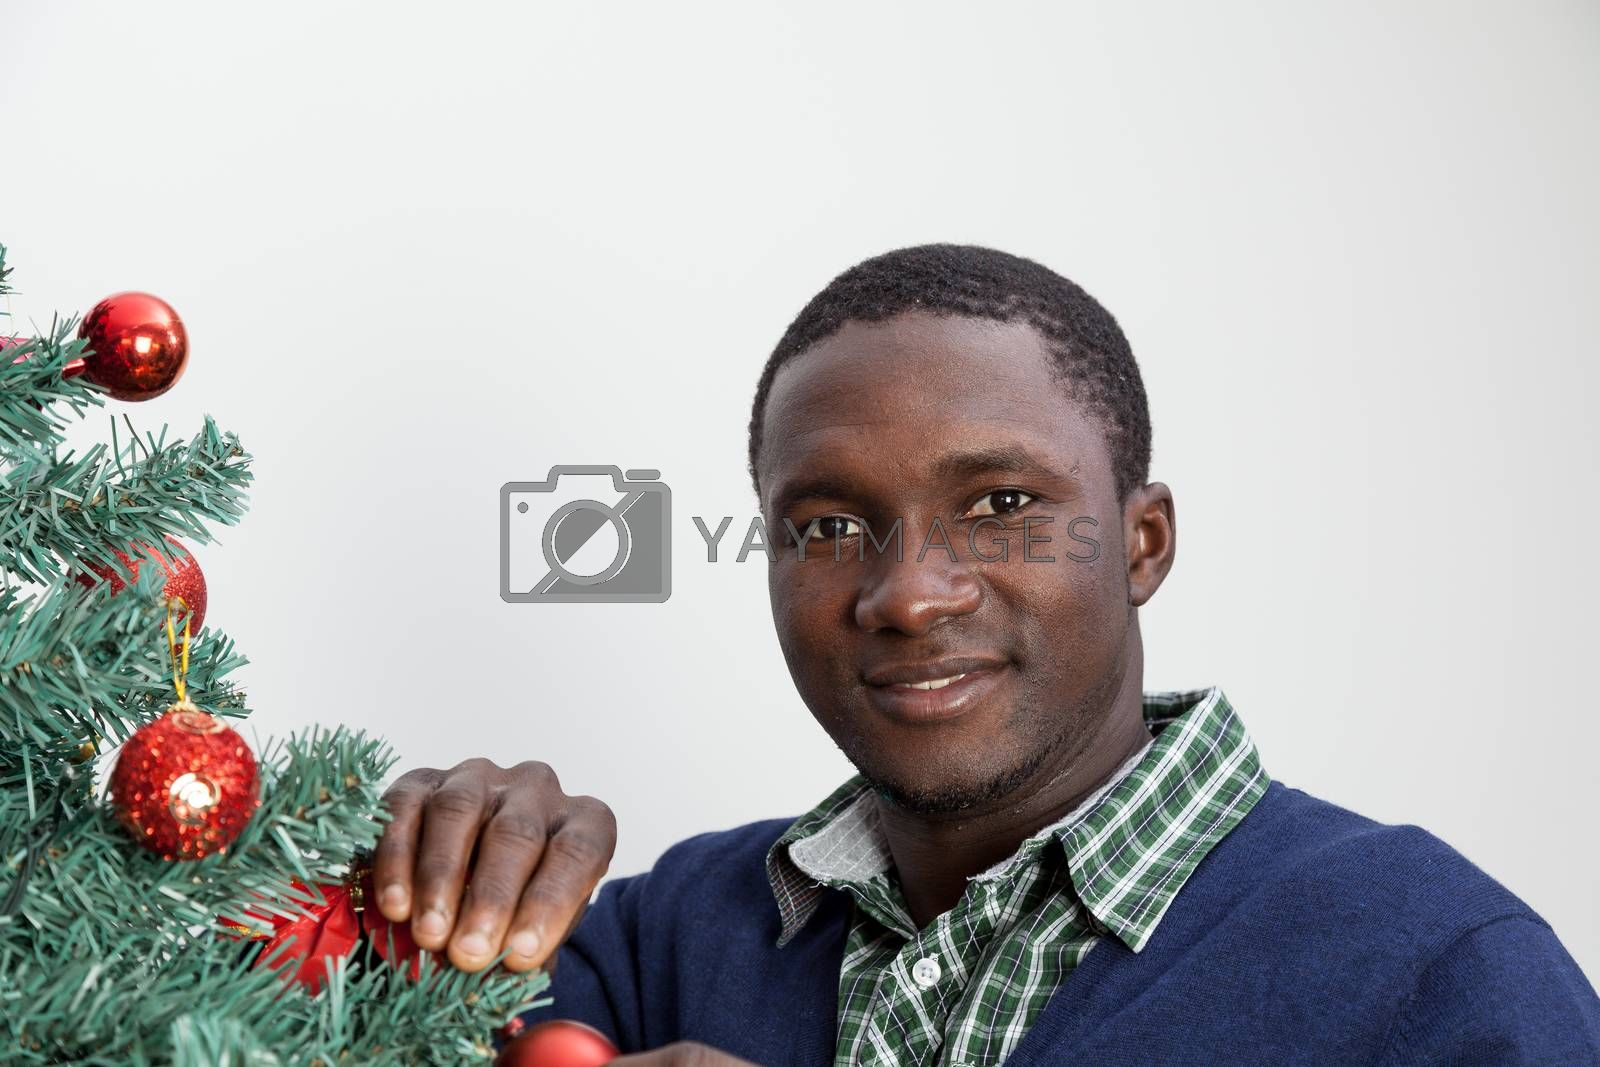 30-35, adult, african, background, balls, beautiful, black, celebration, cheerful, child, christmas, couple, cute, decoration, festive, festivity, handsome, happy, home, house, household, husband, joyful, living, love, male, man, model, old, person, portrait, property, releases, room, smile, smiling, tree, two, vertical, white, wife, xmas, years